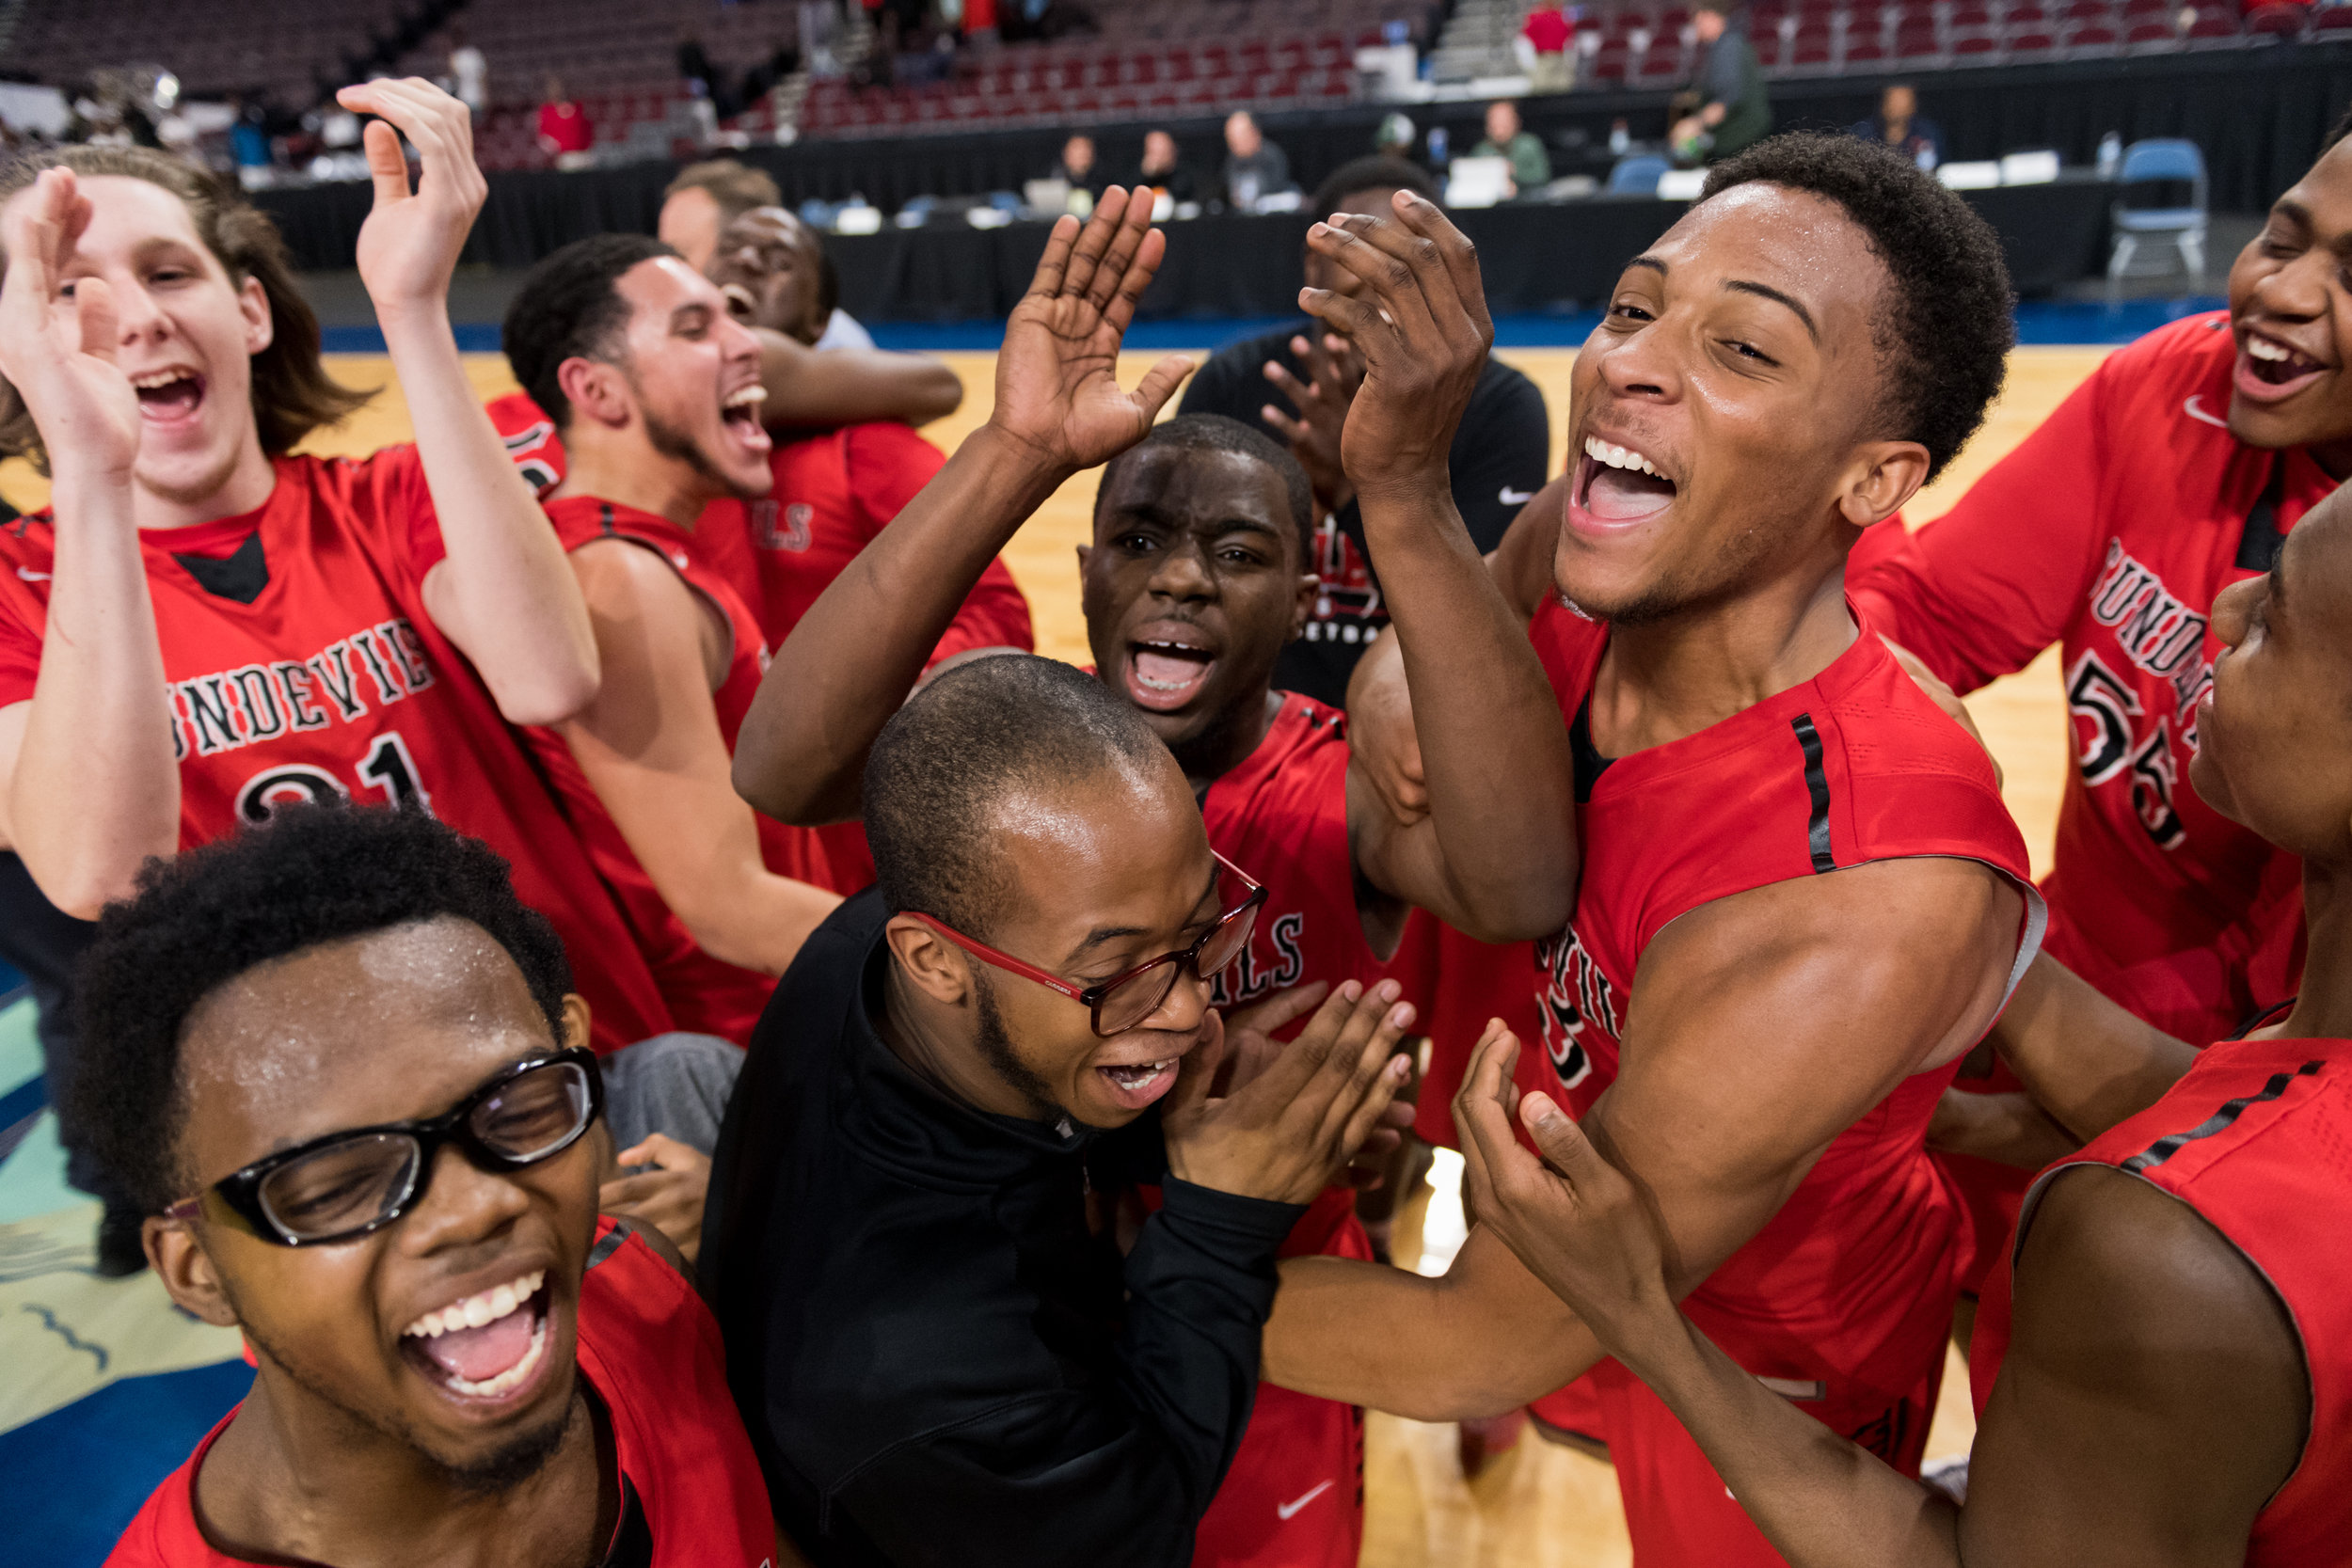 Salem players celebrate after defeating Hampton 50 to 49 during the Region 5A Championship game held Monday, February 26, 2018 at the Norfolk Scope.